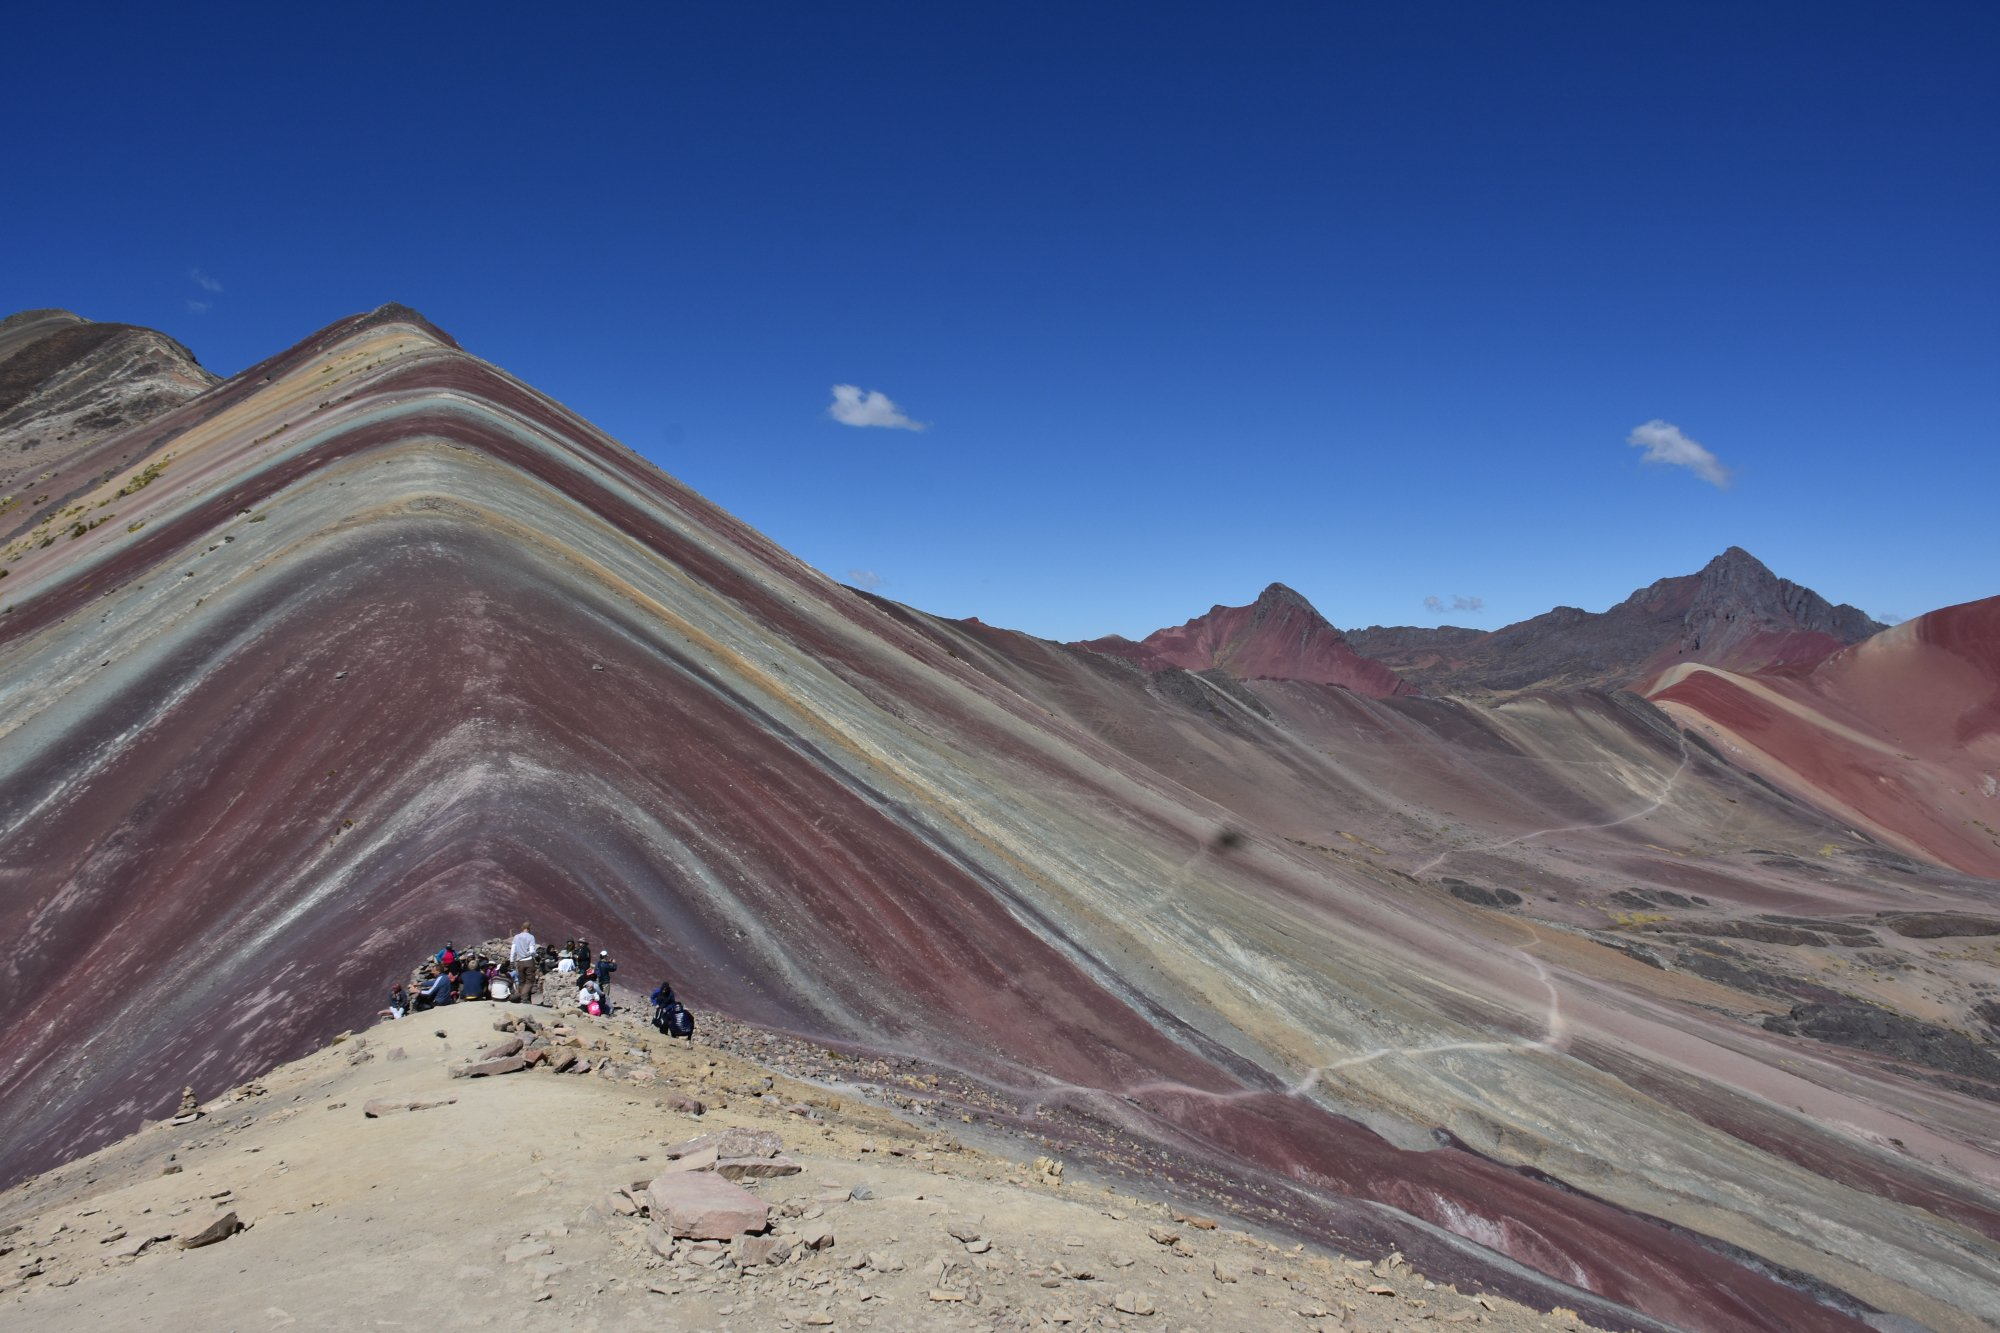 The Rainbow Mountain of Peru, also known as Winicunca, is stunning and can be seen on the specta